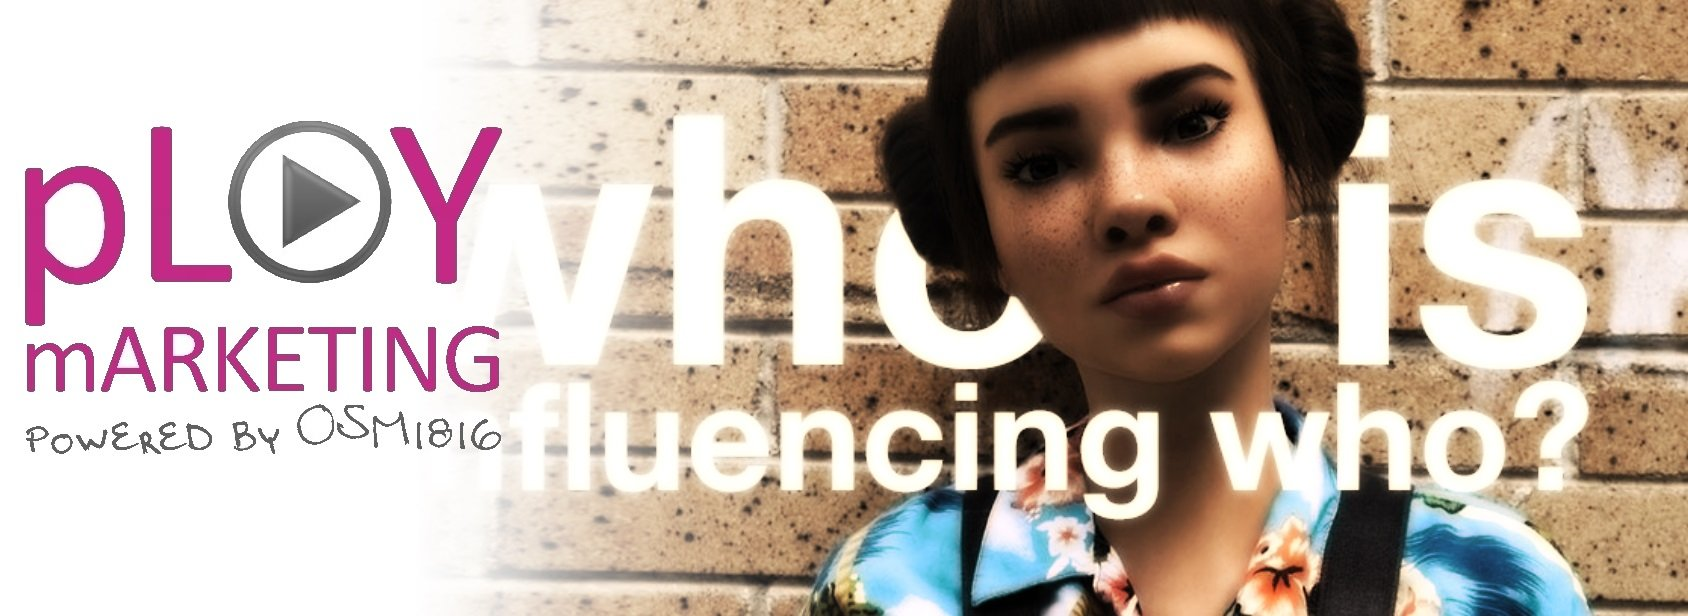 Virtual influencer: Il futuro del marketing?